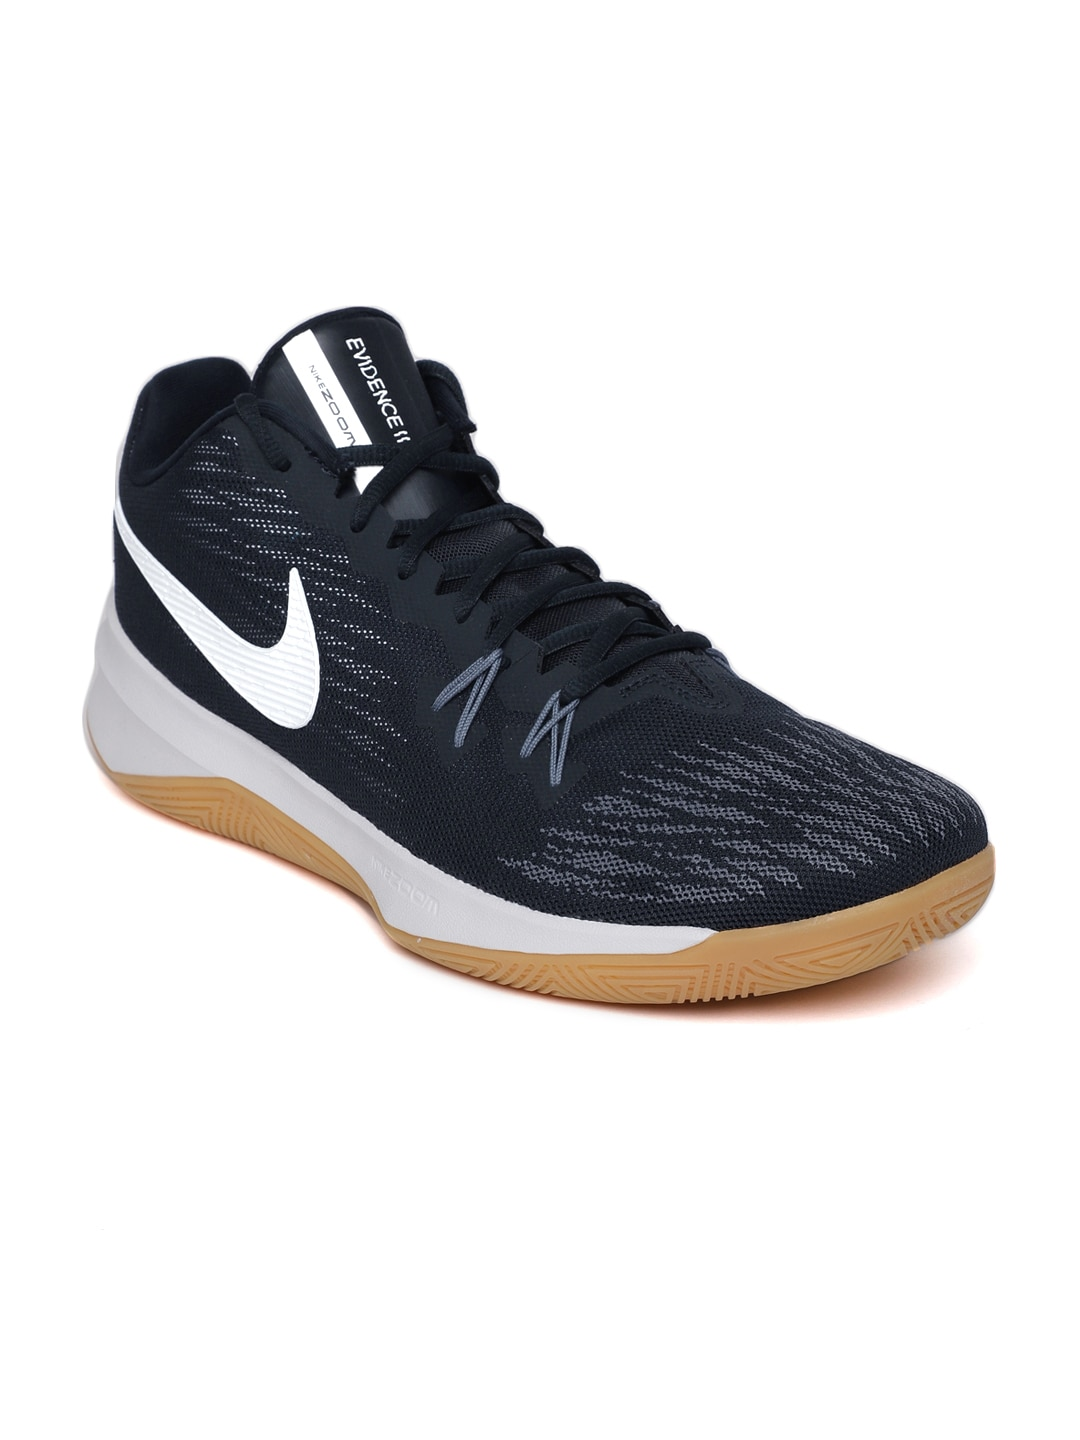 ab51b0b5ead Nike Shoes - Buy Nike Shoes for Men   Women Online